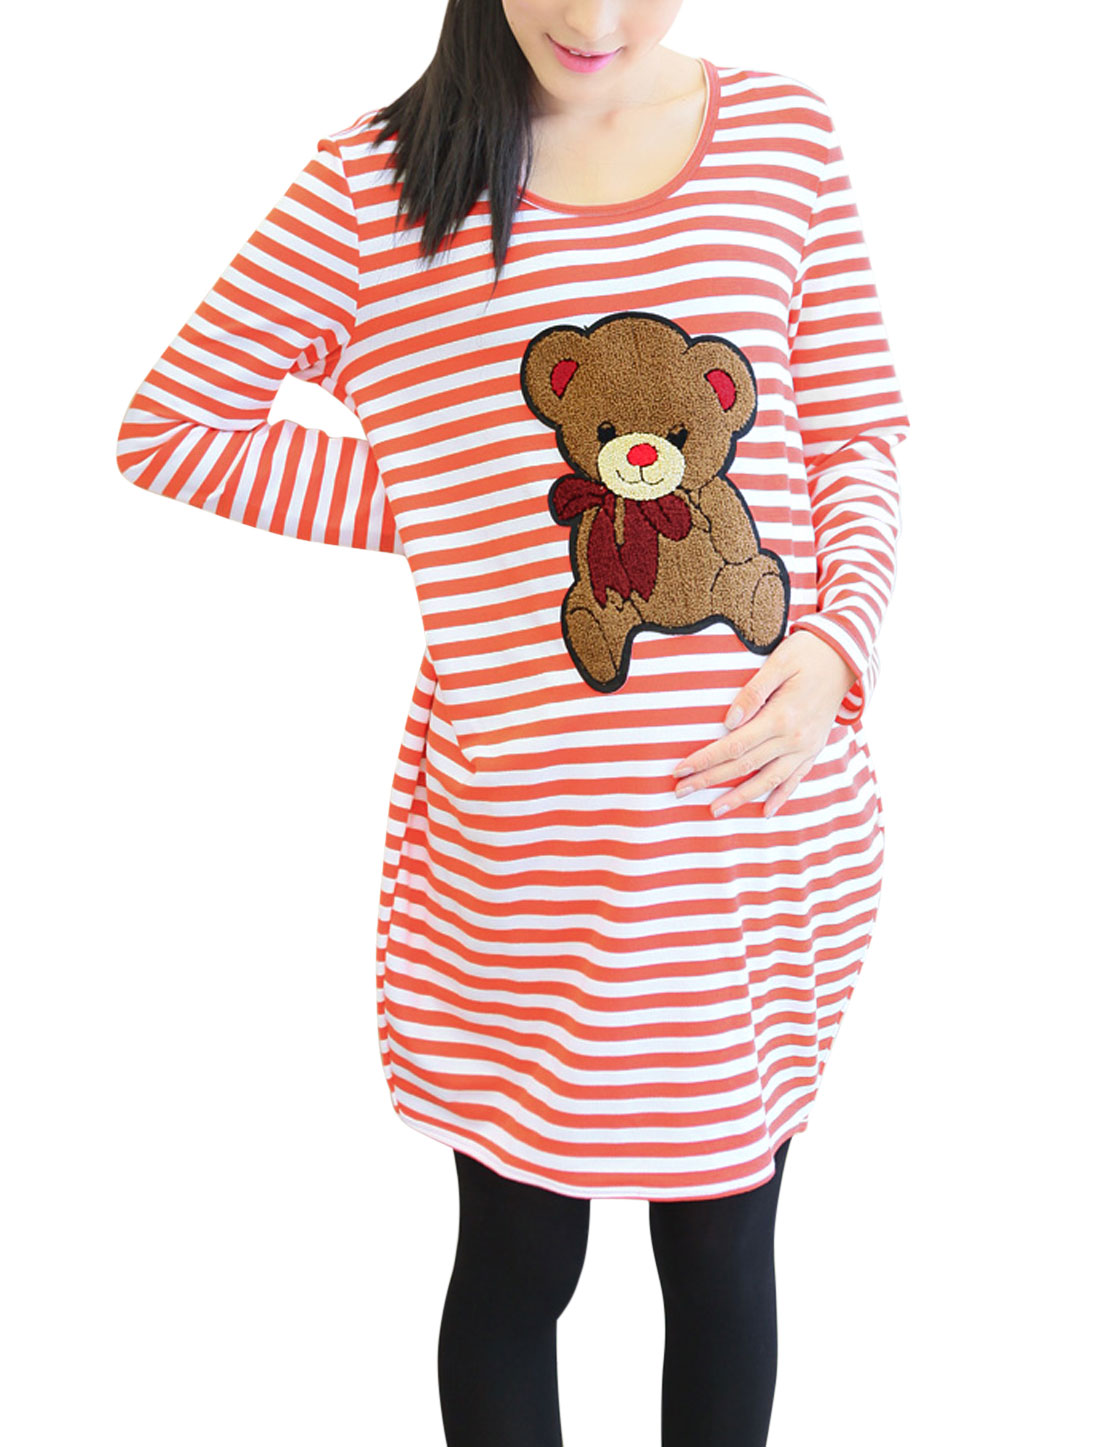 Maternity Long Sleeves Striped Bear Applique Pullover Tunic Top Orange White M